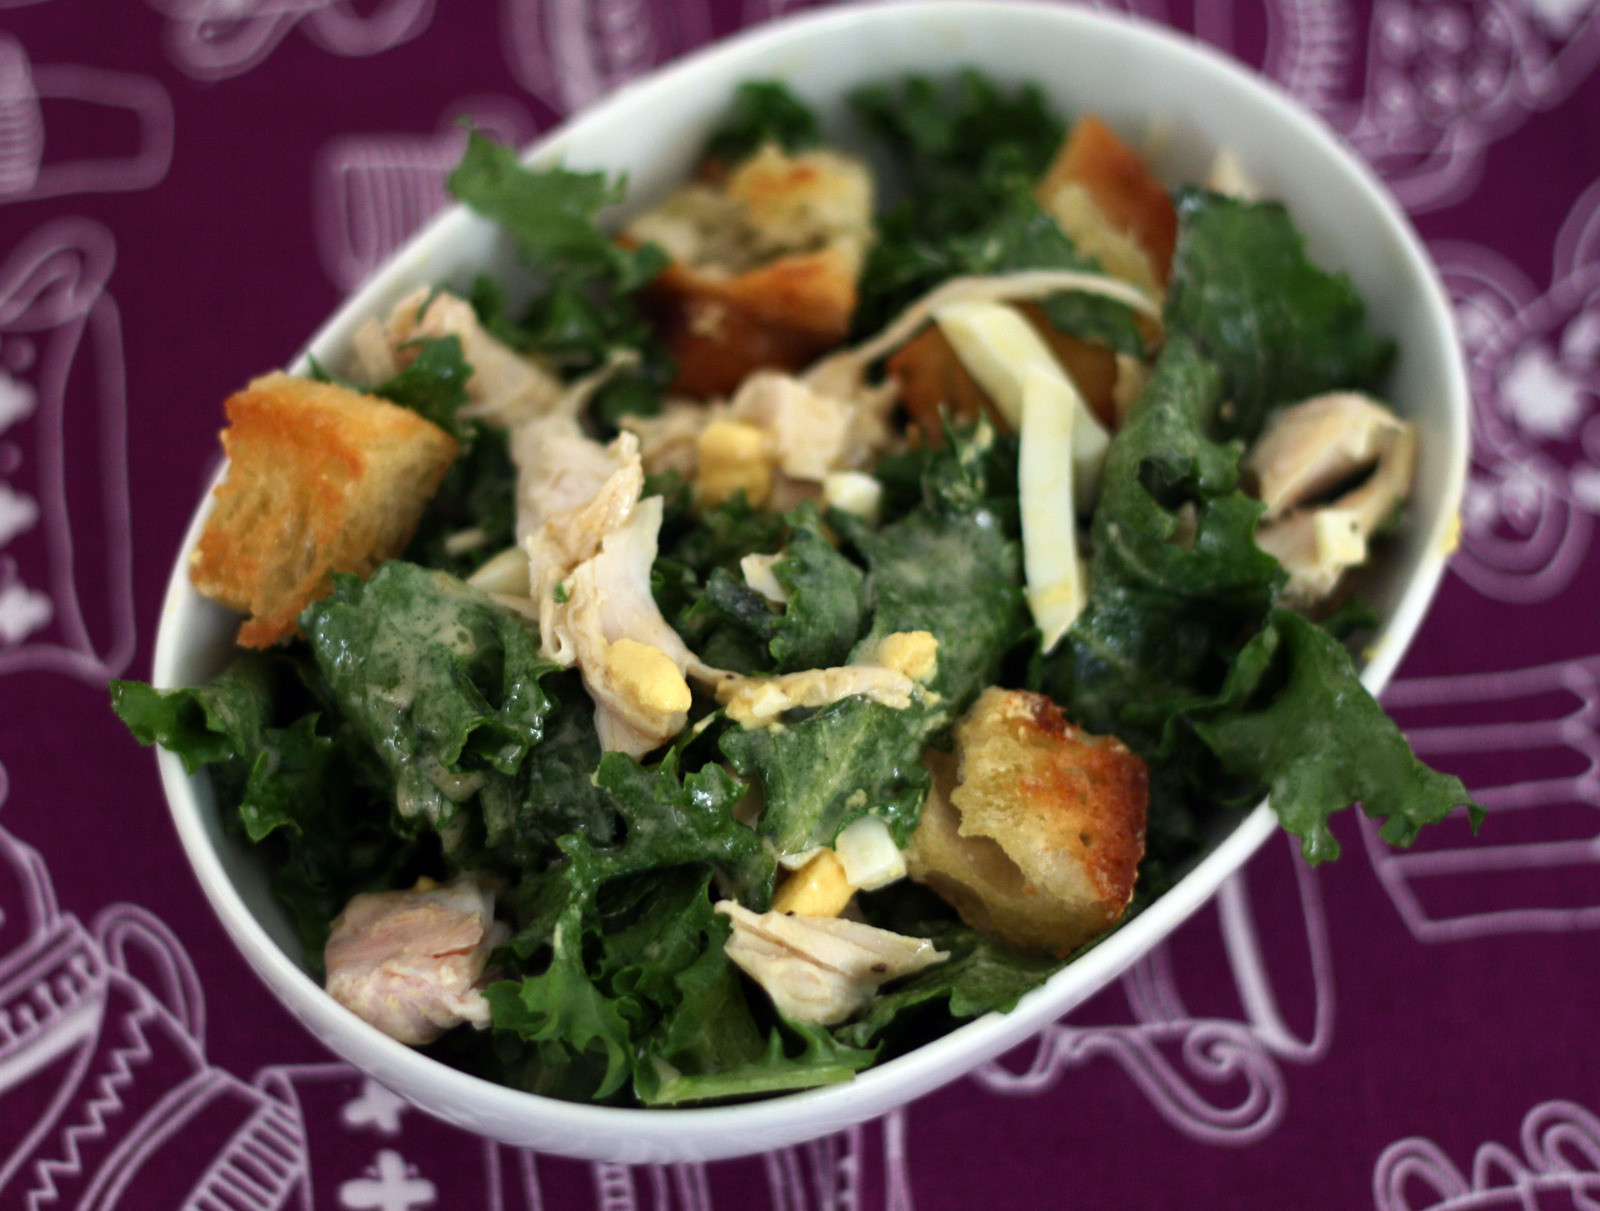 Escarole Salad With Turkey Amp Garlic Rubbed Croutons How To Make A Salad Cooking On Cut Out